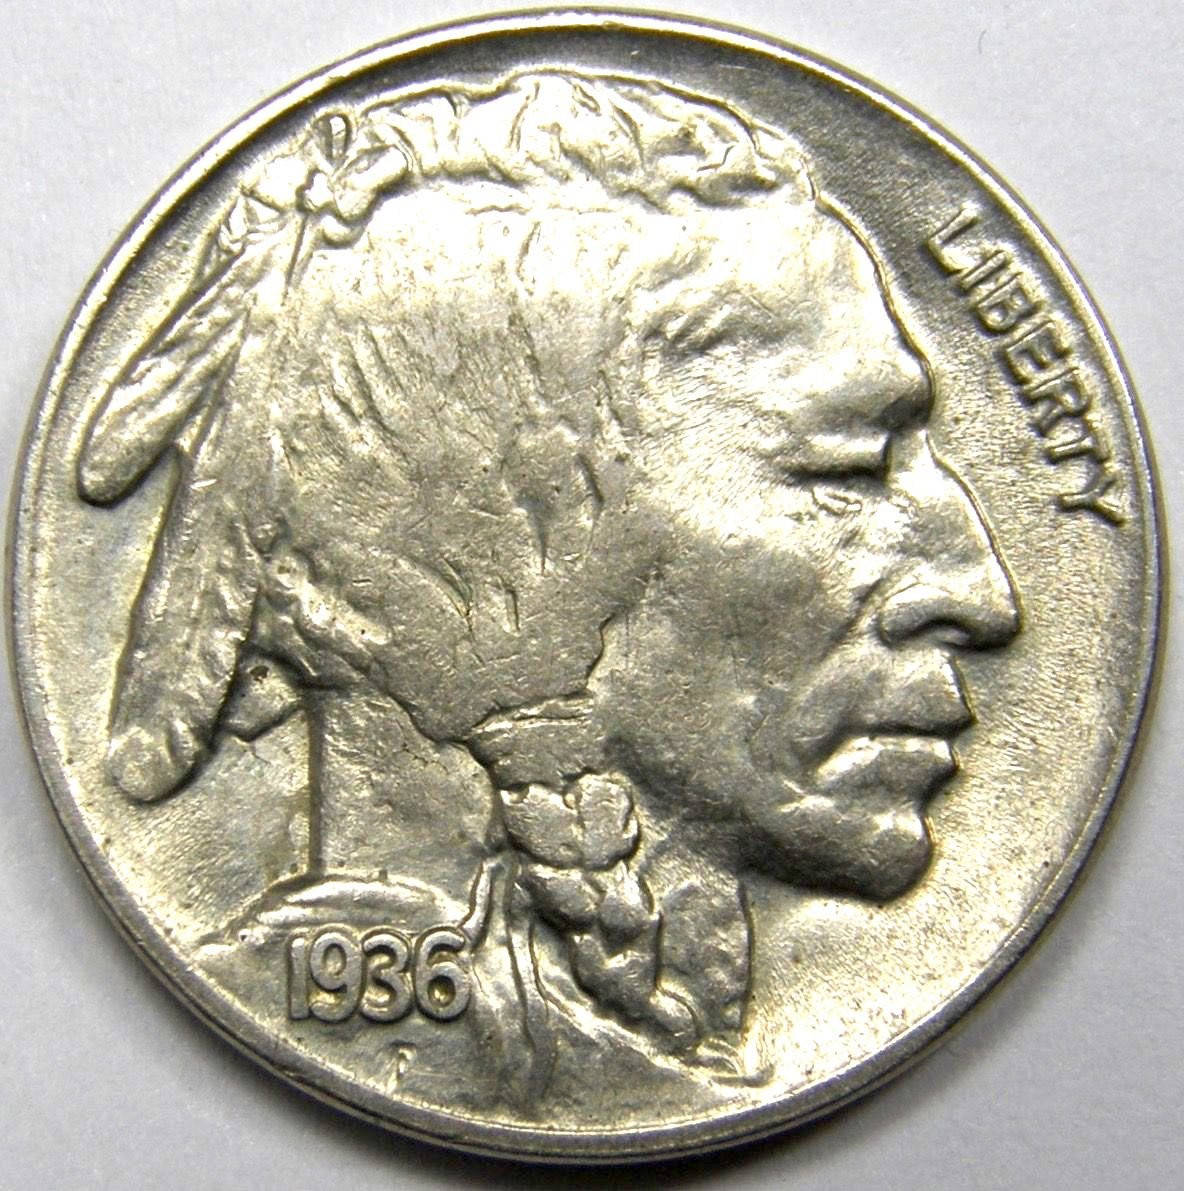 Lovely 1936 D Buffalo Nickel 1 Reverse is Rotated 10˚ as Shown Buffalo Nickel E Of Lovely 42 Images Buffalo Nickel E